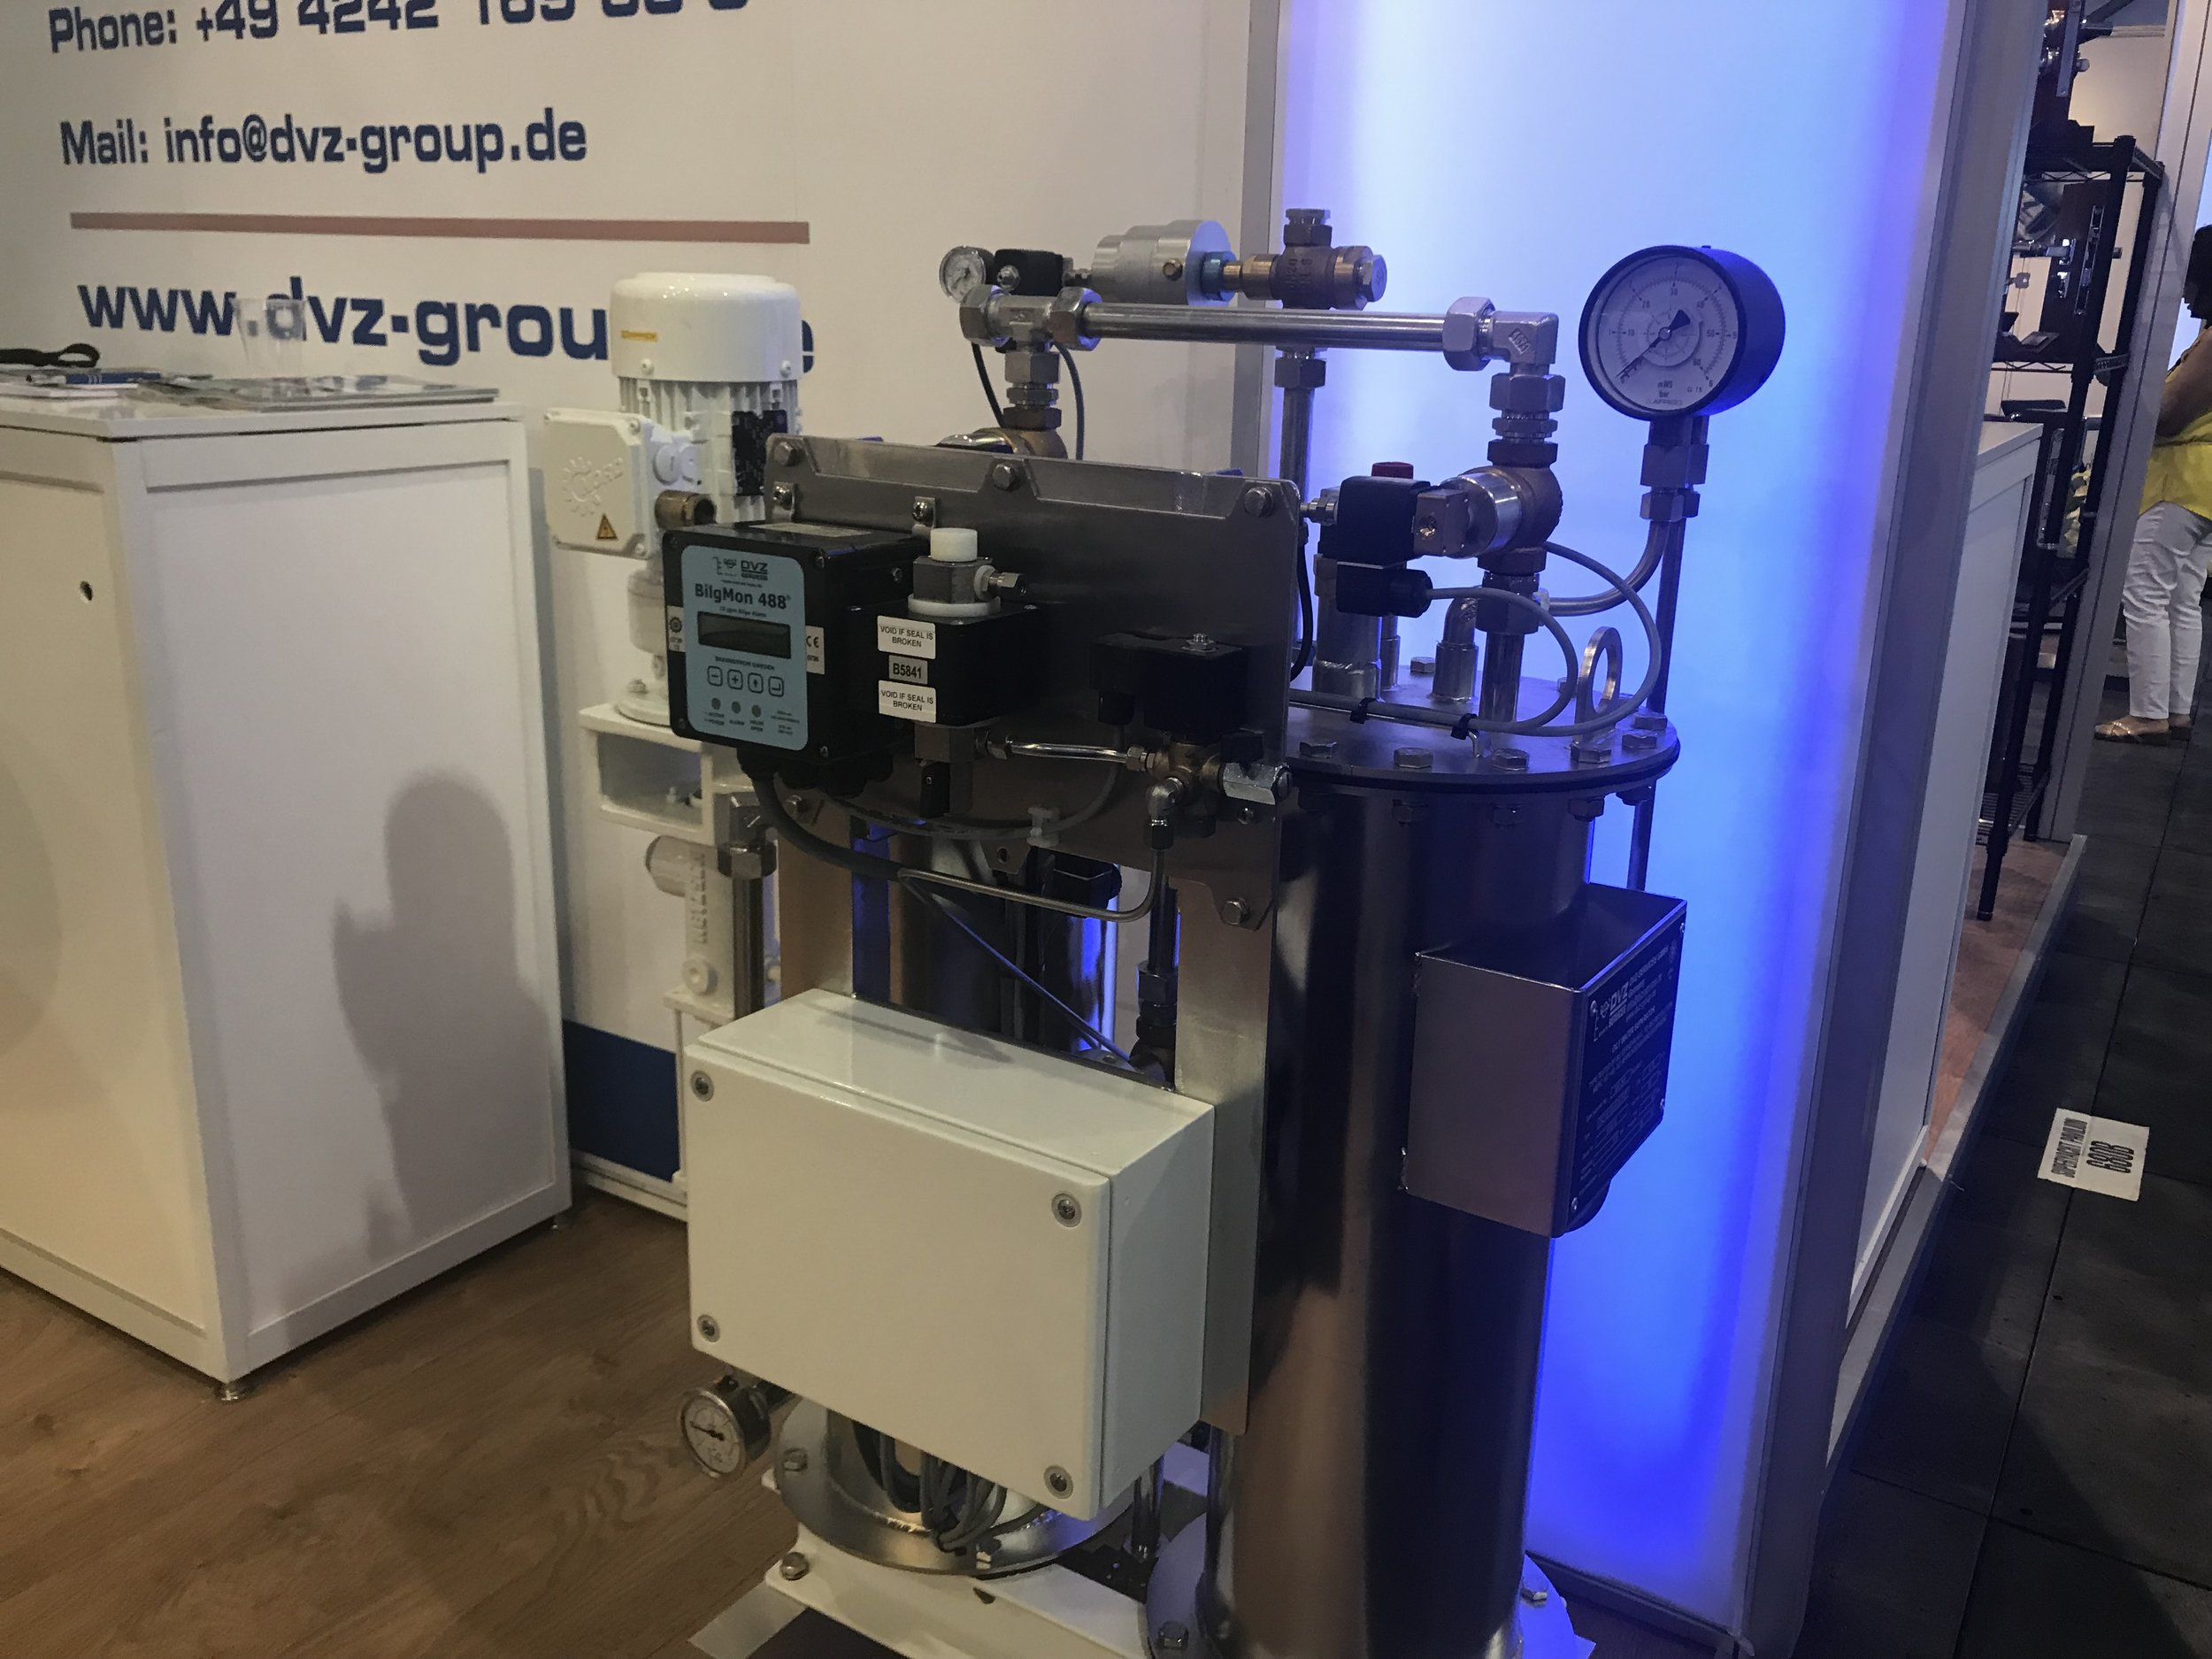 The smallest oily water separator produced by DVZ Group. Pictured at the 2017 Ft. Lauderdale Boat Show.